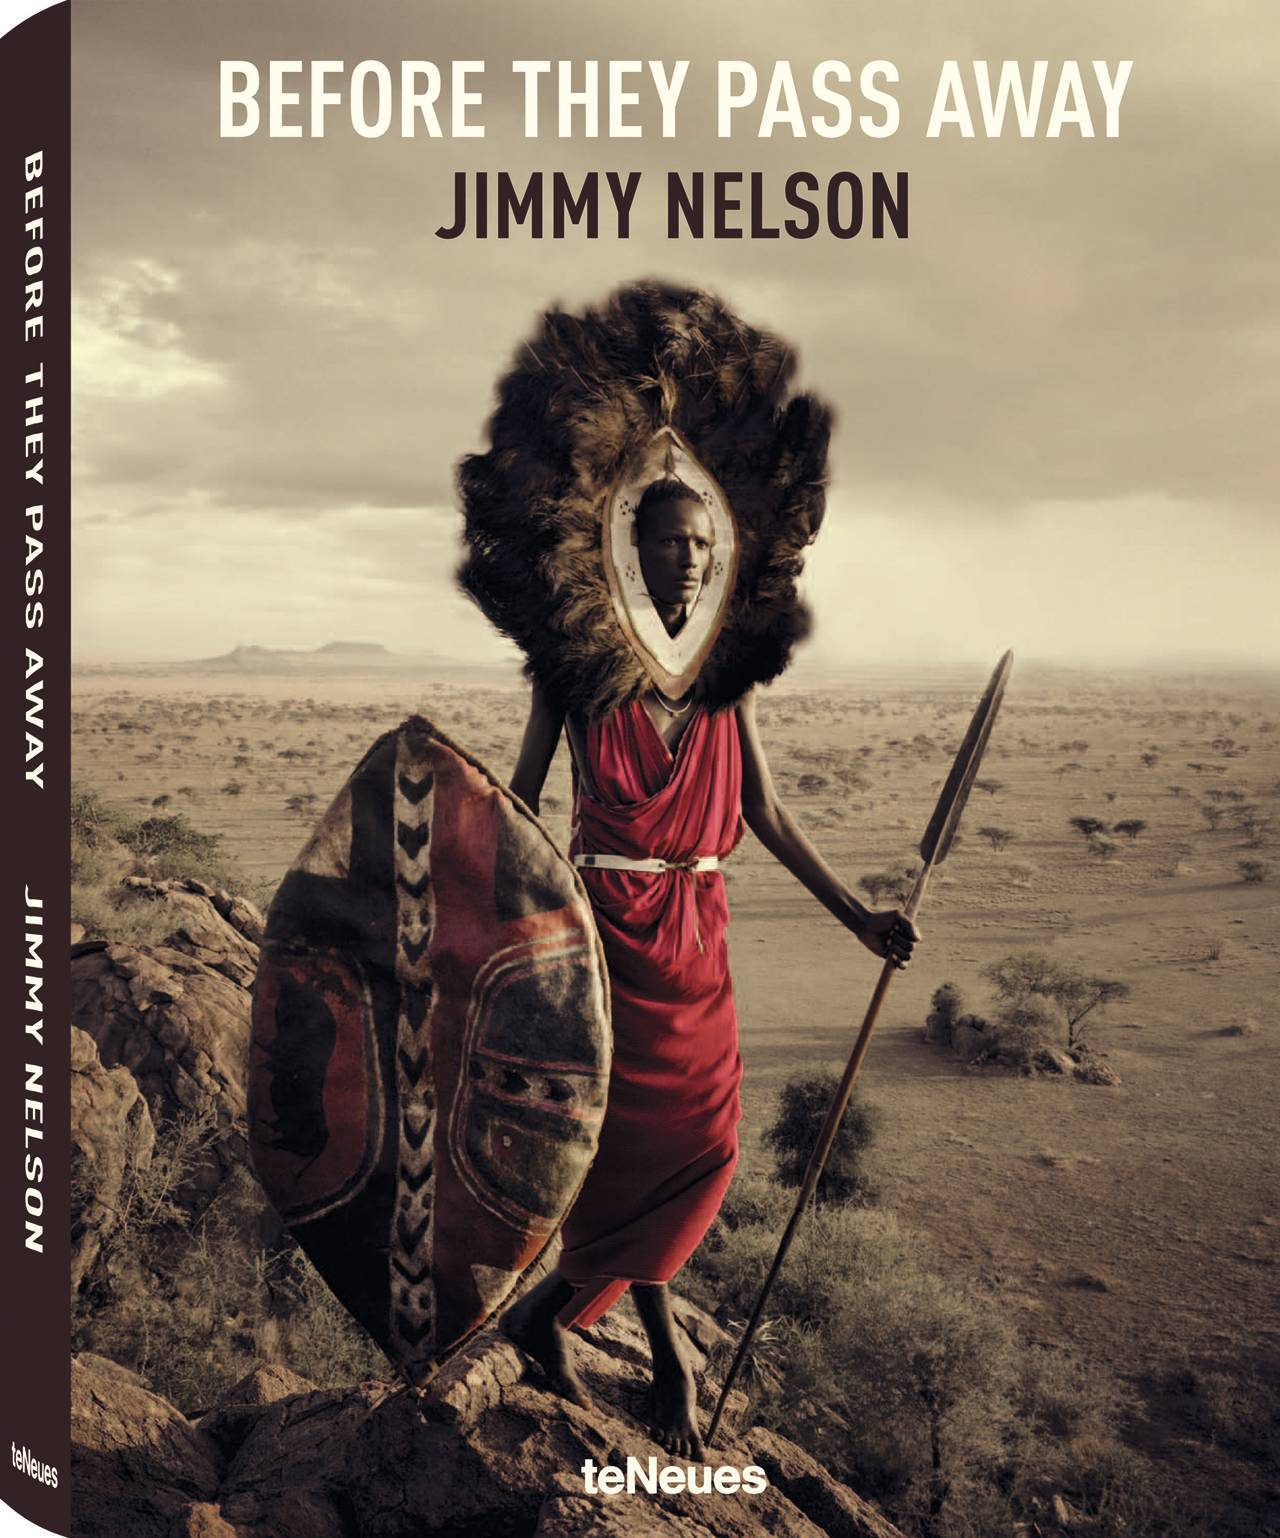 © Before They Pass Away by Jimmy Nelson, published by teNeues, www.teneues.com. Maasai, Tanzania, Photo © Jimmy Nelson Pictures BV, www.jimmynelson.com, www.facebook.com/jimmy.nelson.official